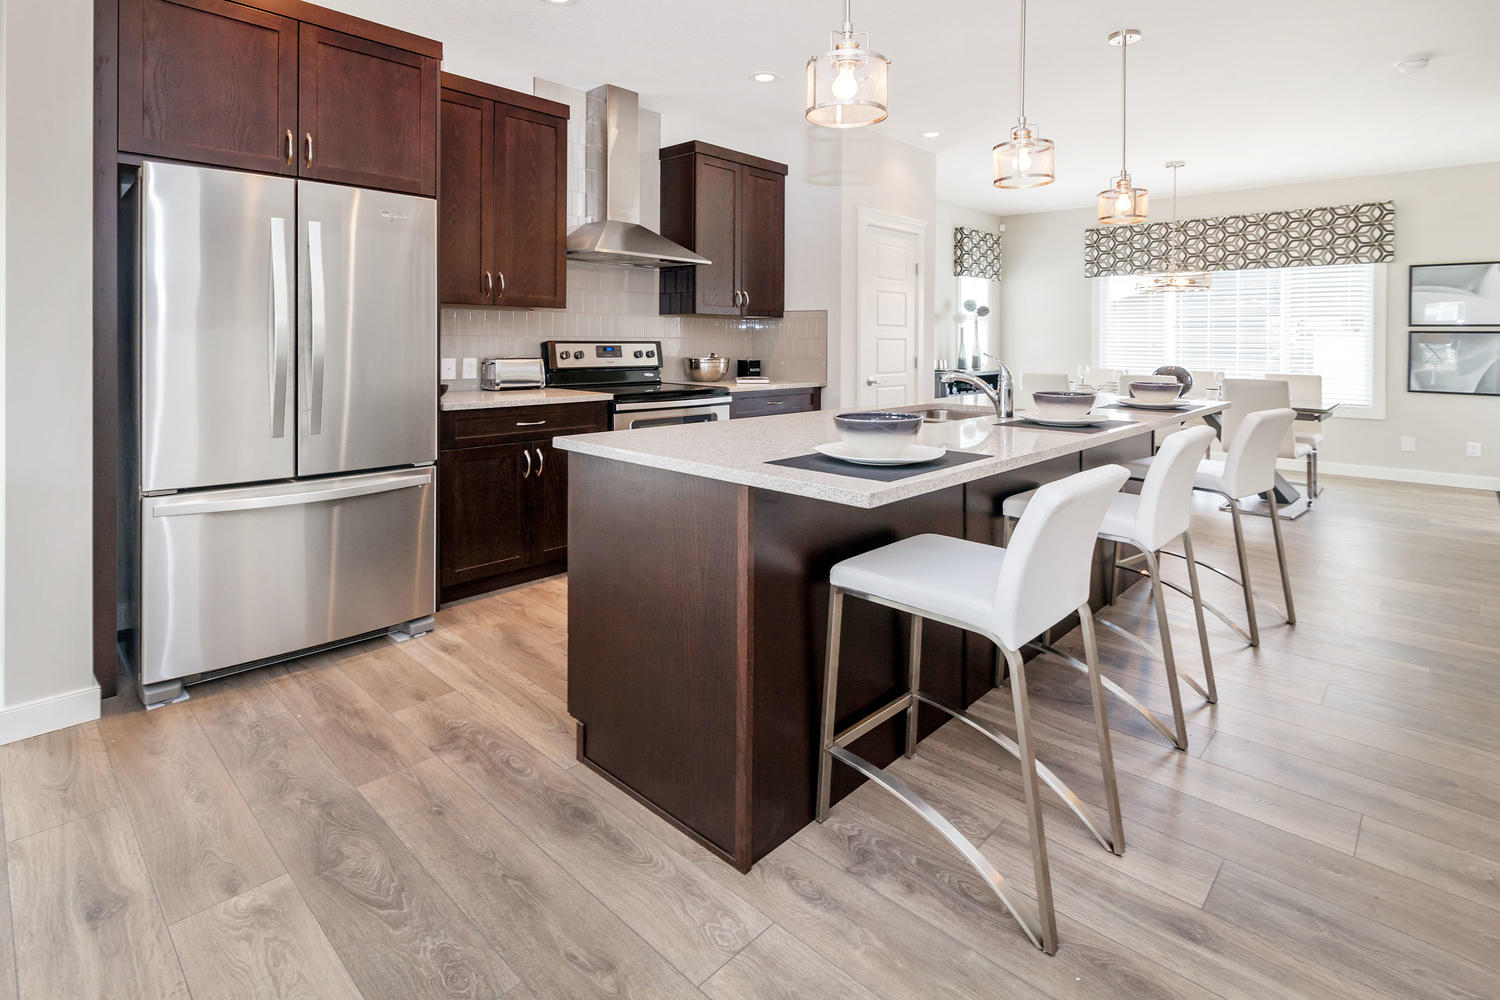 kitchen design in the pacesetter zero lot line home